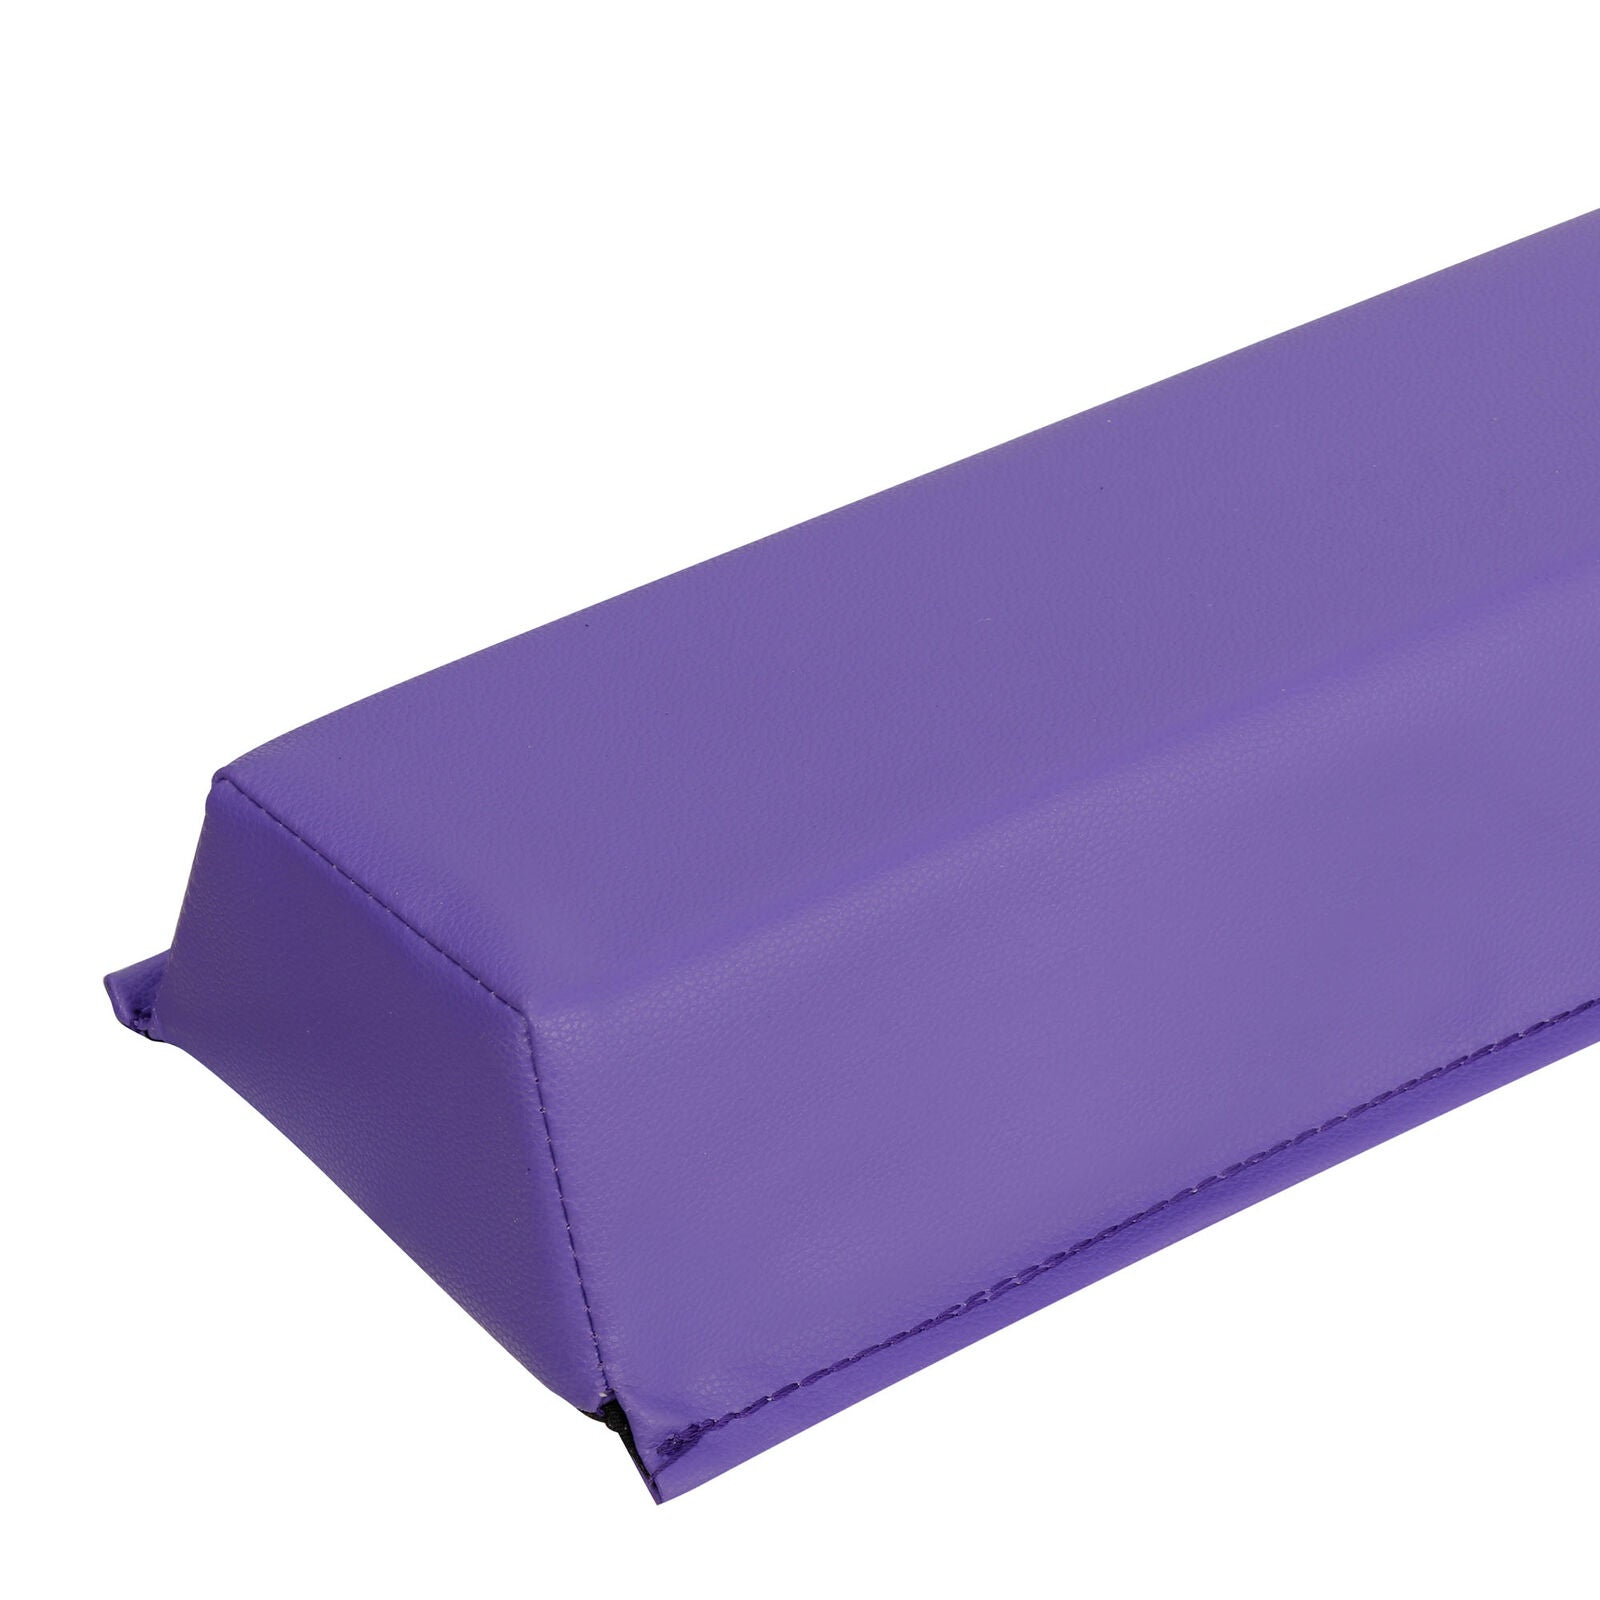 Premium Folding Balance Beam Gymnastics Practice Training 6ft - Morealis